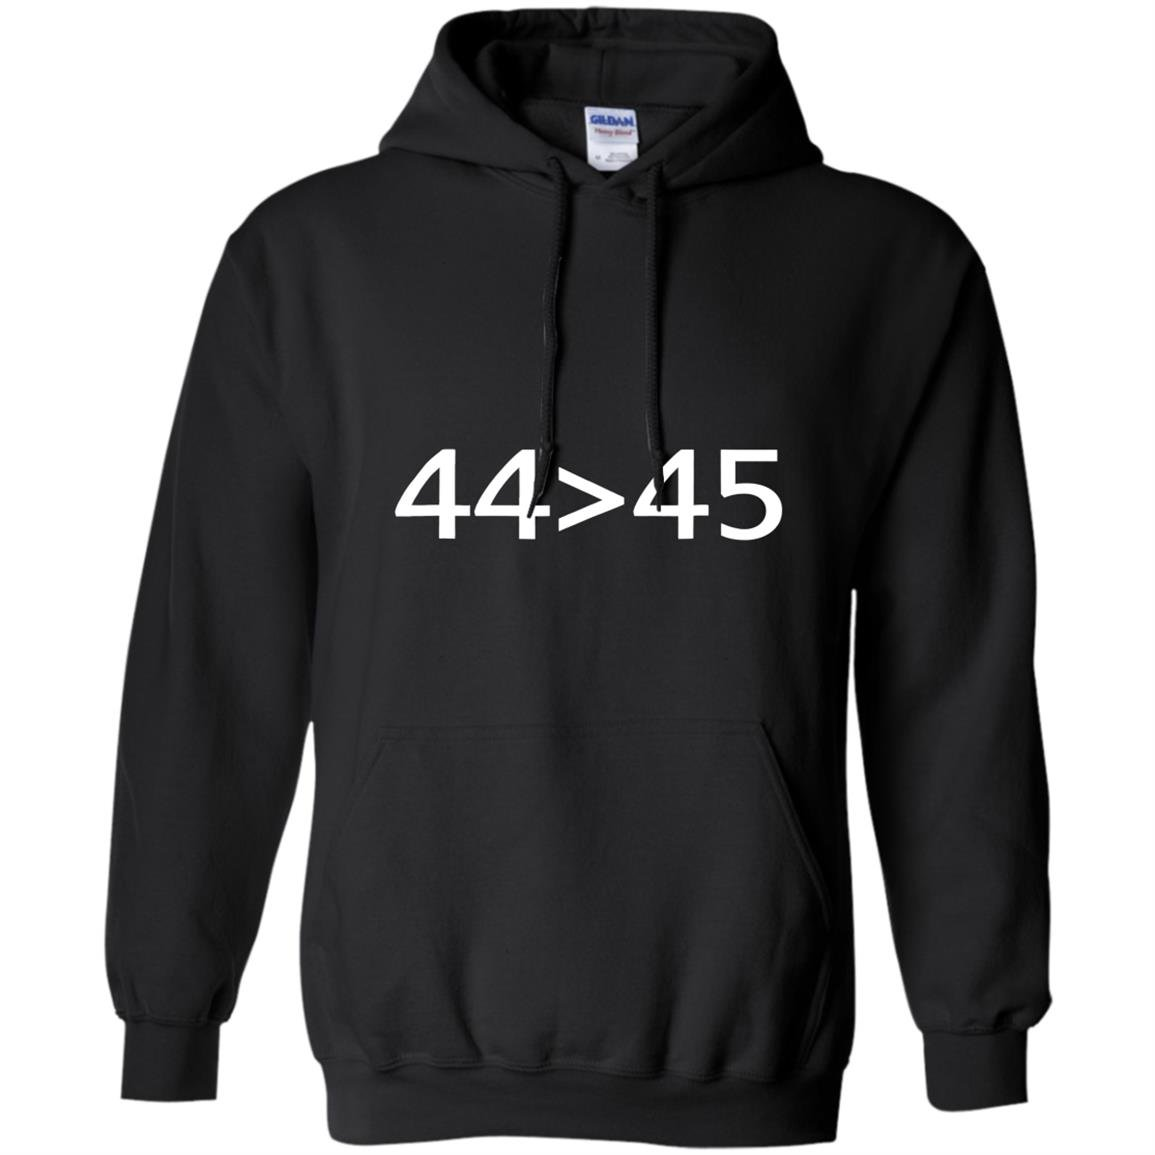 4445 the 44th president is greater than 45th Hoodie